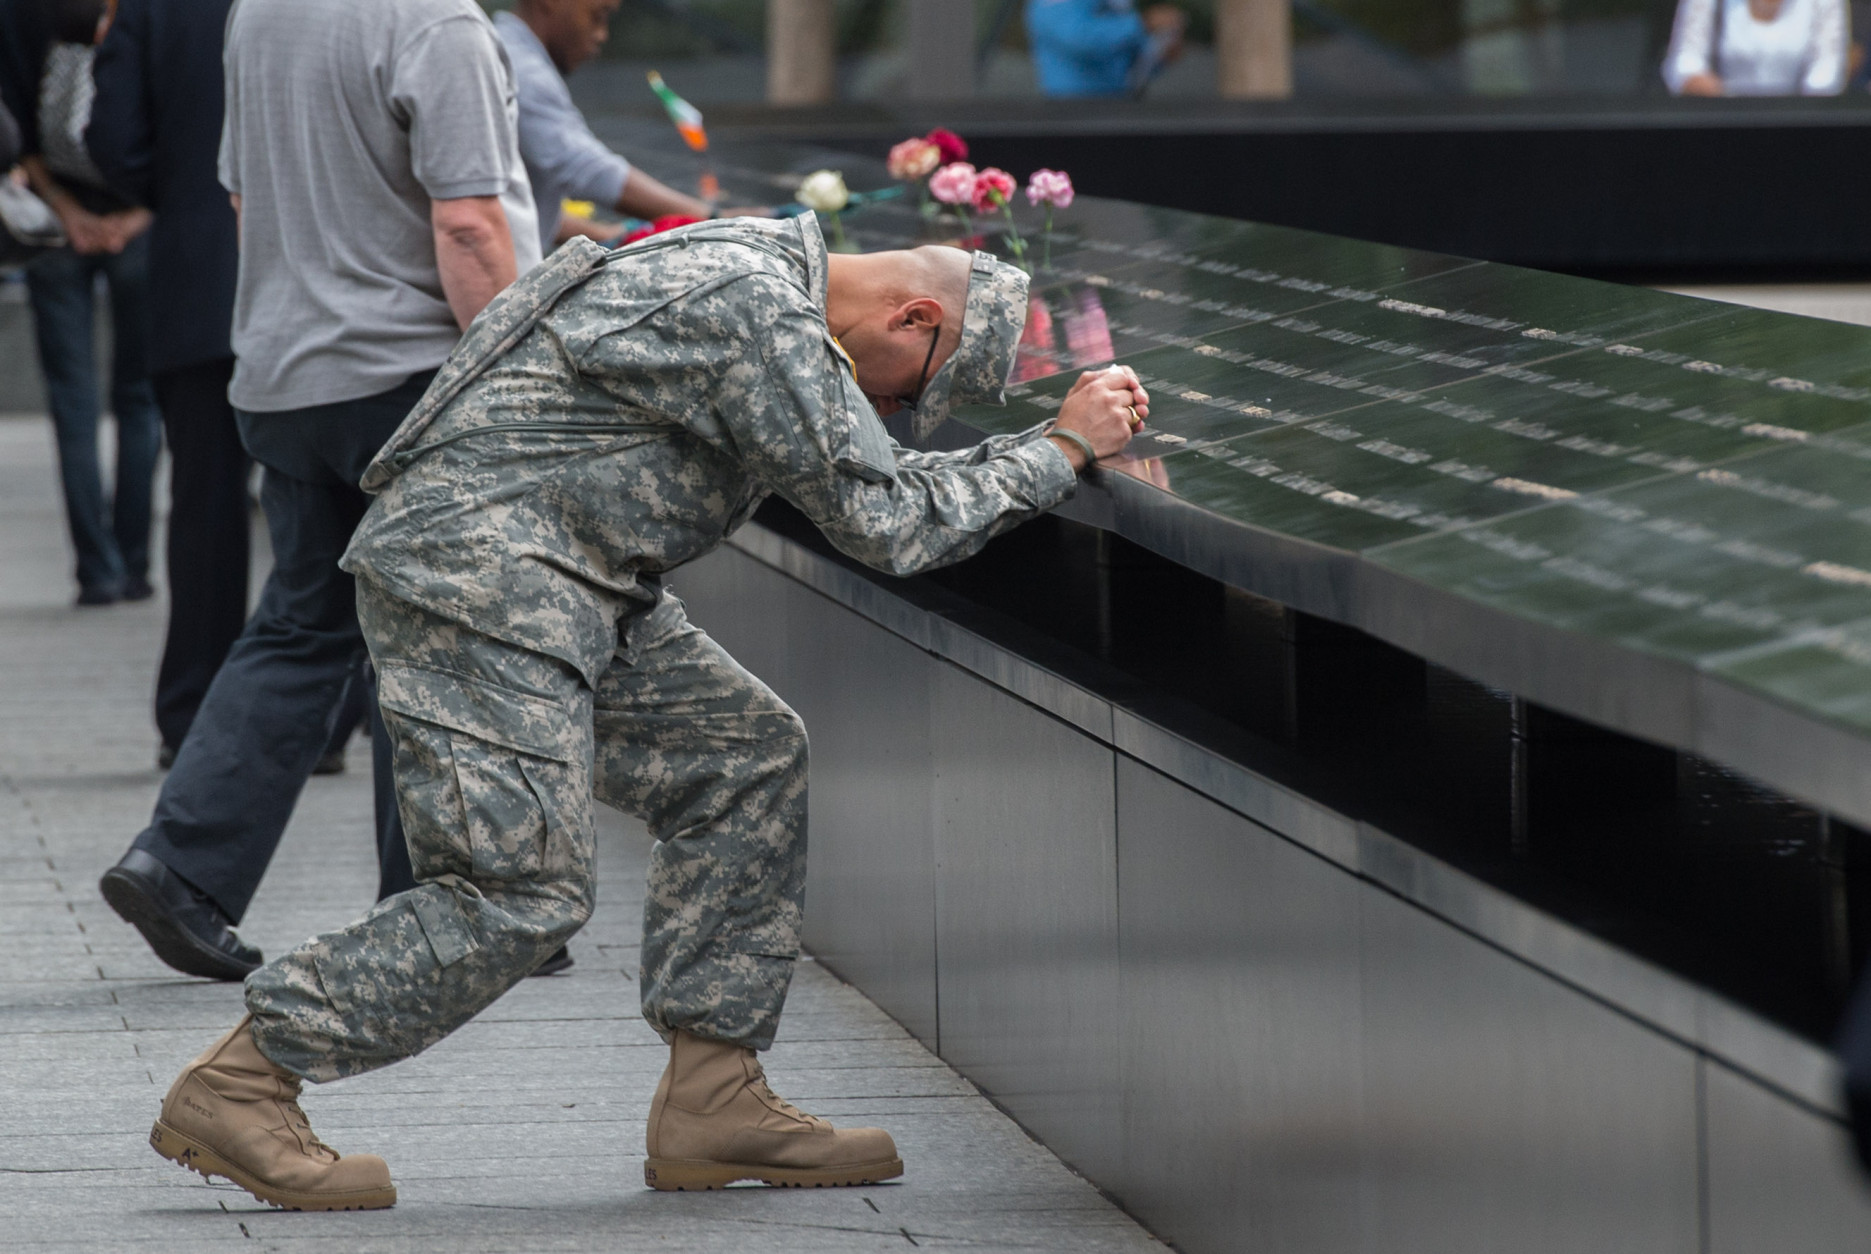 Army Sgt. Edwin Morales prays during a ceremony at the World Trade Center site in New York on Friday, Sept. 11, 2015. With a moment of silence and somber reading of names, victims' relatives began marking the 14th anniversary of Sept. 11 in a subdued gathering Friday at ground zero.(AP Photo/Bryan R. Smith)